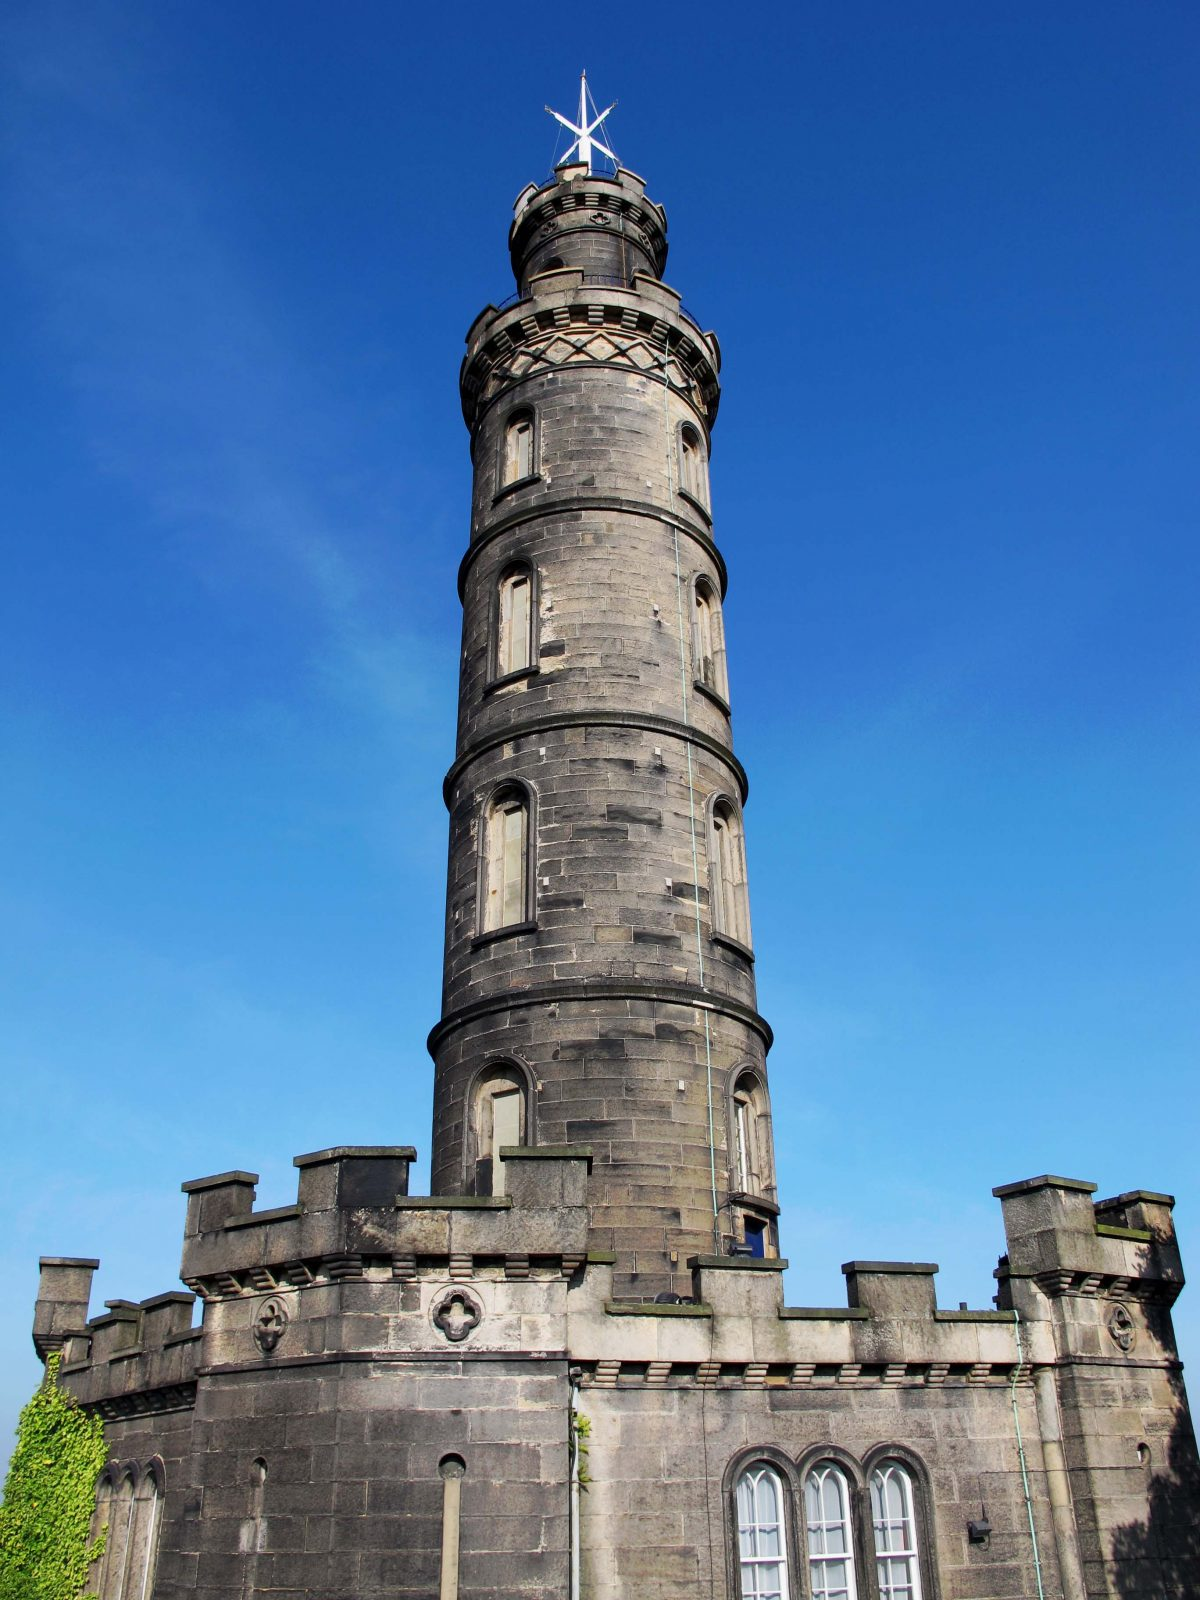 The Nelson Monument